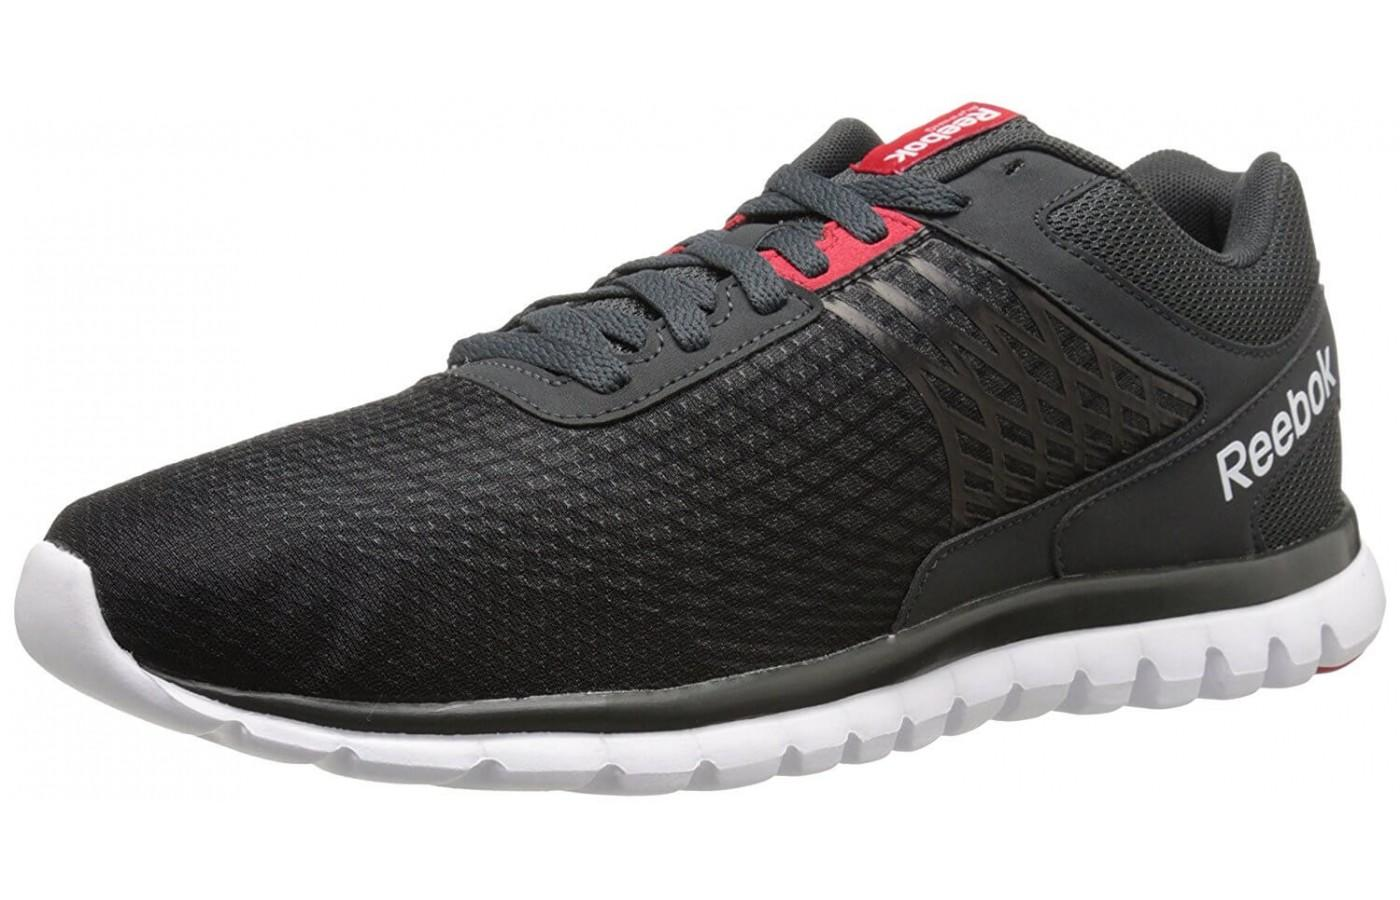 An in depth review of the Reebok Sublite Escape 3.0